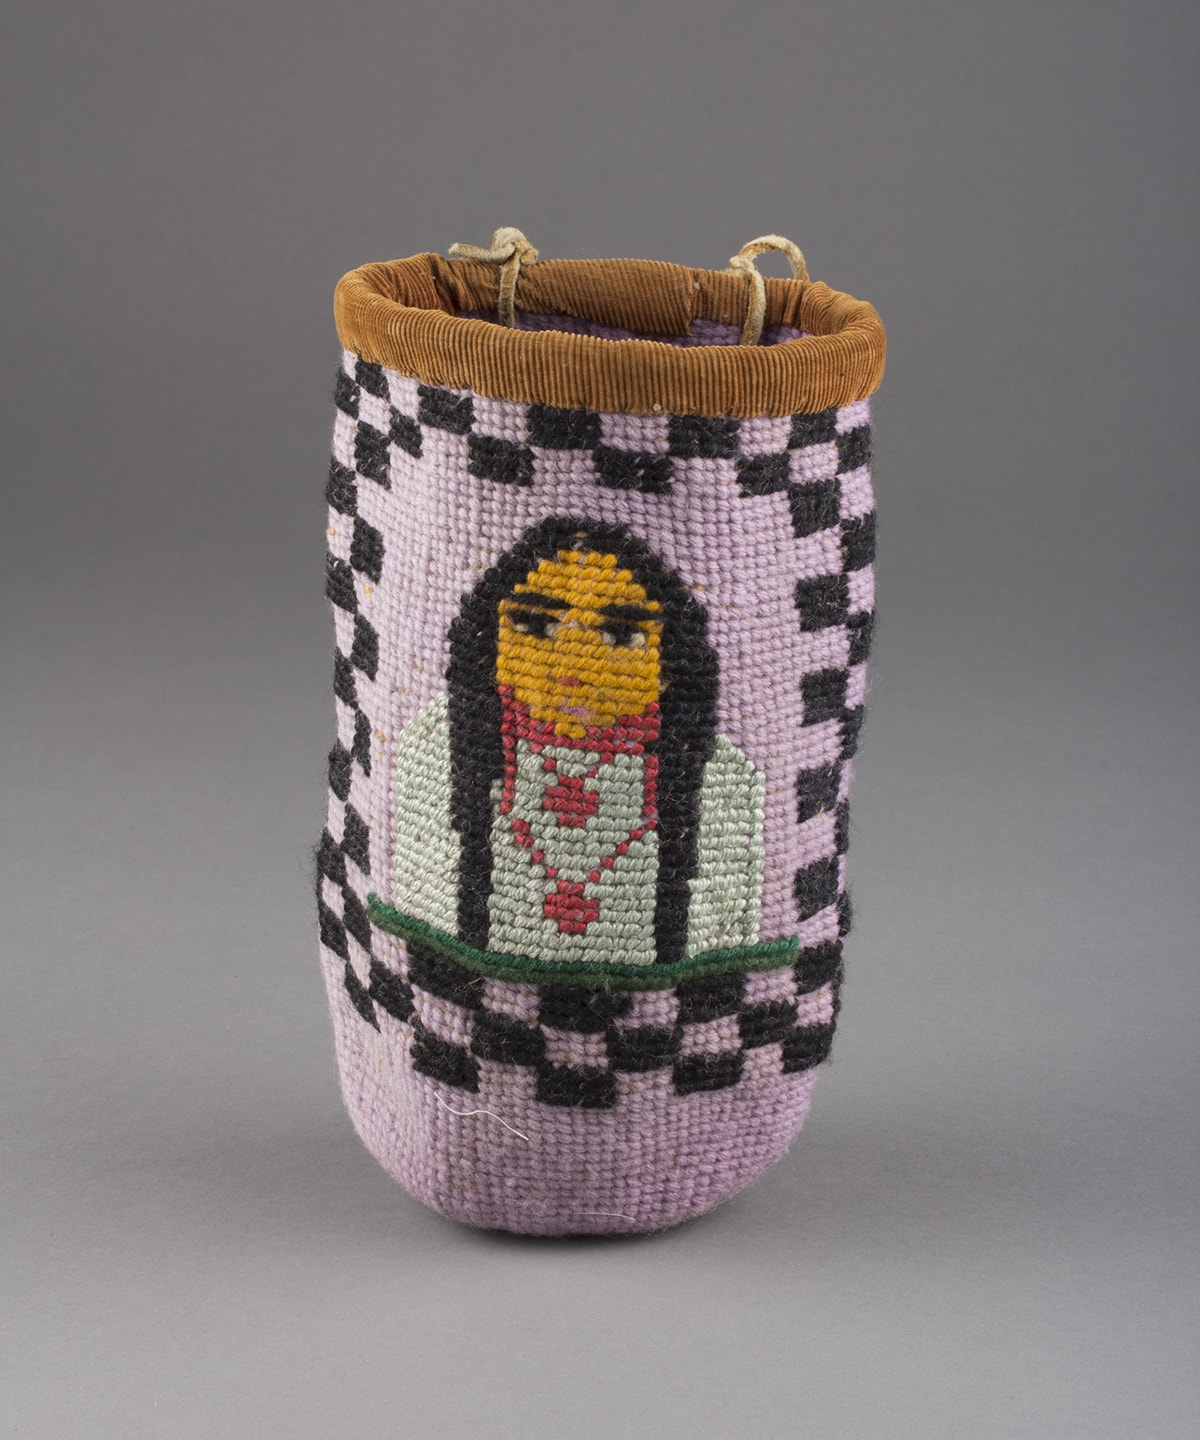 Berry bag, Umatilla artist, commercial dyes, buckskin and cotton, size: 10 x 5 ¼ inches in diameter. A tall, cylindrical, woven basket with the image of a portrait surrounded by a black checkerboard pattern. The figure is positioned at the center of the basket, showing the head and upper body. The individual has long black hair, black eyes and brows, and a golden yellow face. Two rose-colored necklaces adorn an off-white shirt. A dark green bar runs along the bottom of the figure. The body of the basket is lilac and the black checkerboard pattern surrounds the figure with two rows of check at top and sides and three rows at bottom. The rim of the basket is covered in a brown corduroy fabric. Two buckskin ties are seen knotted at the back of the rim.